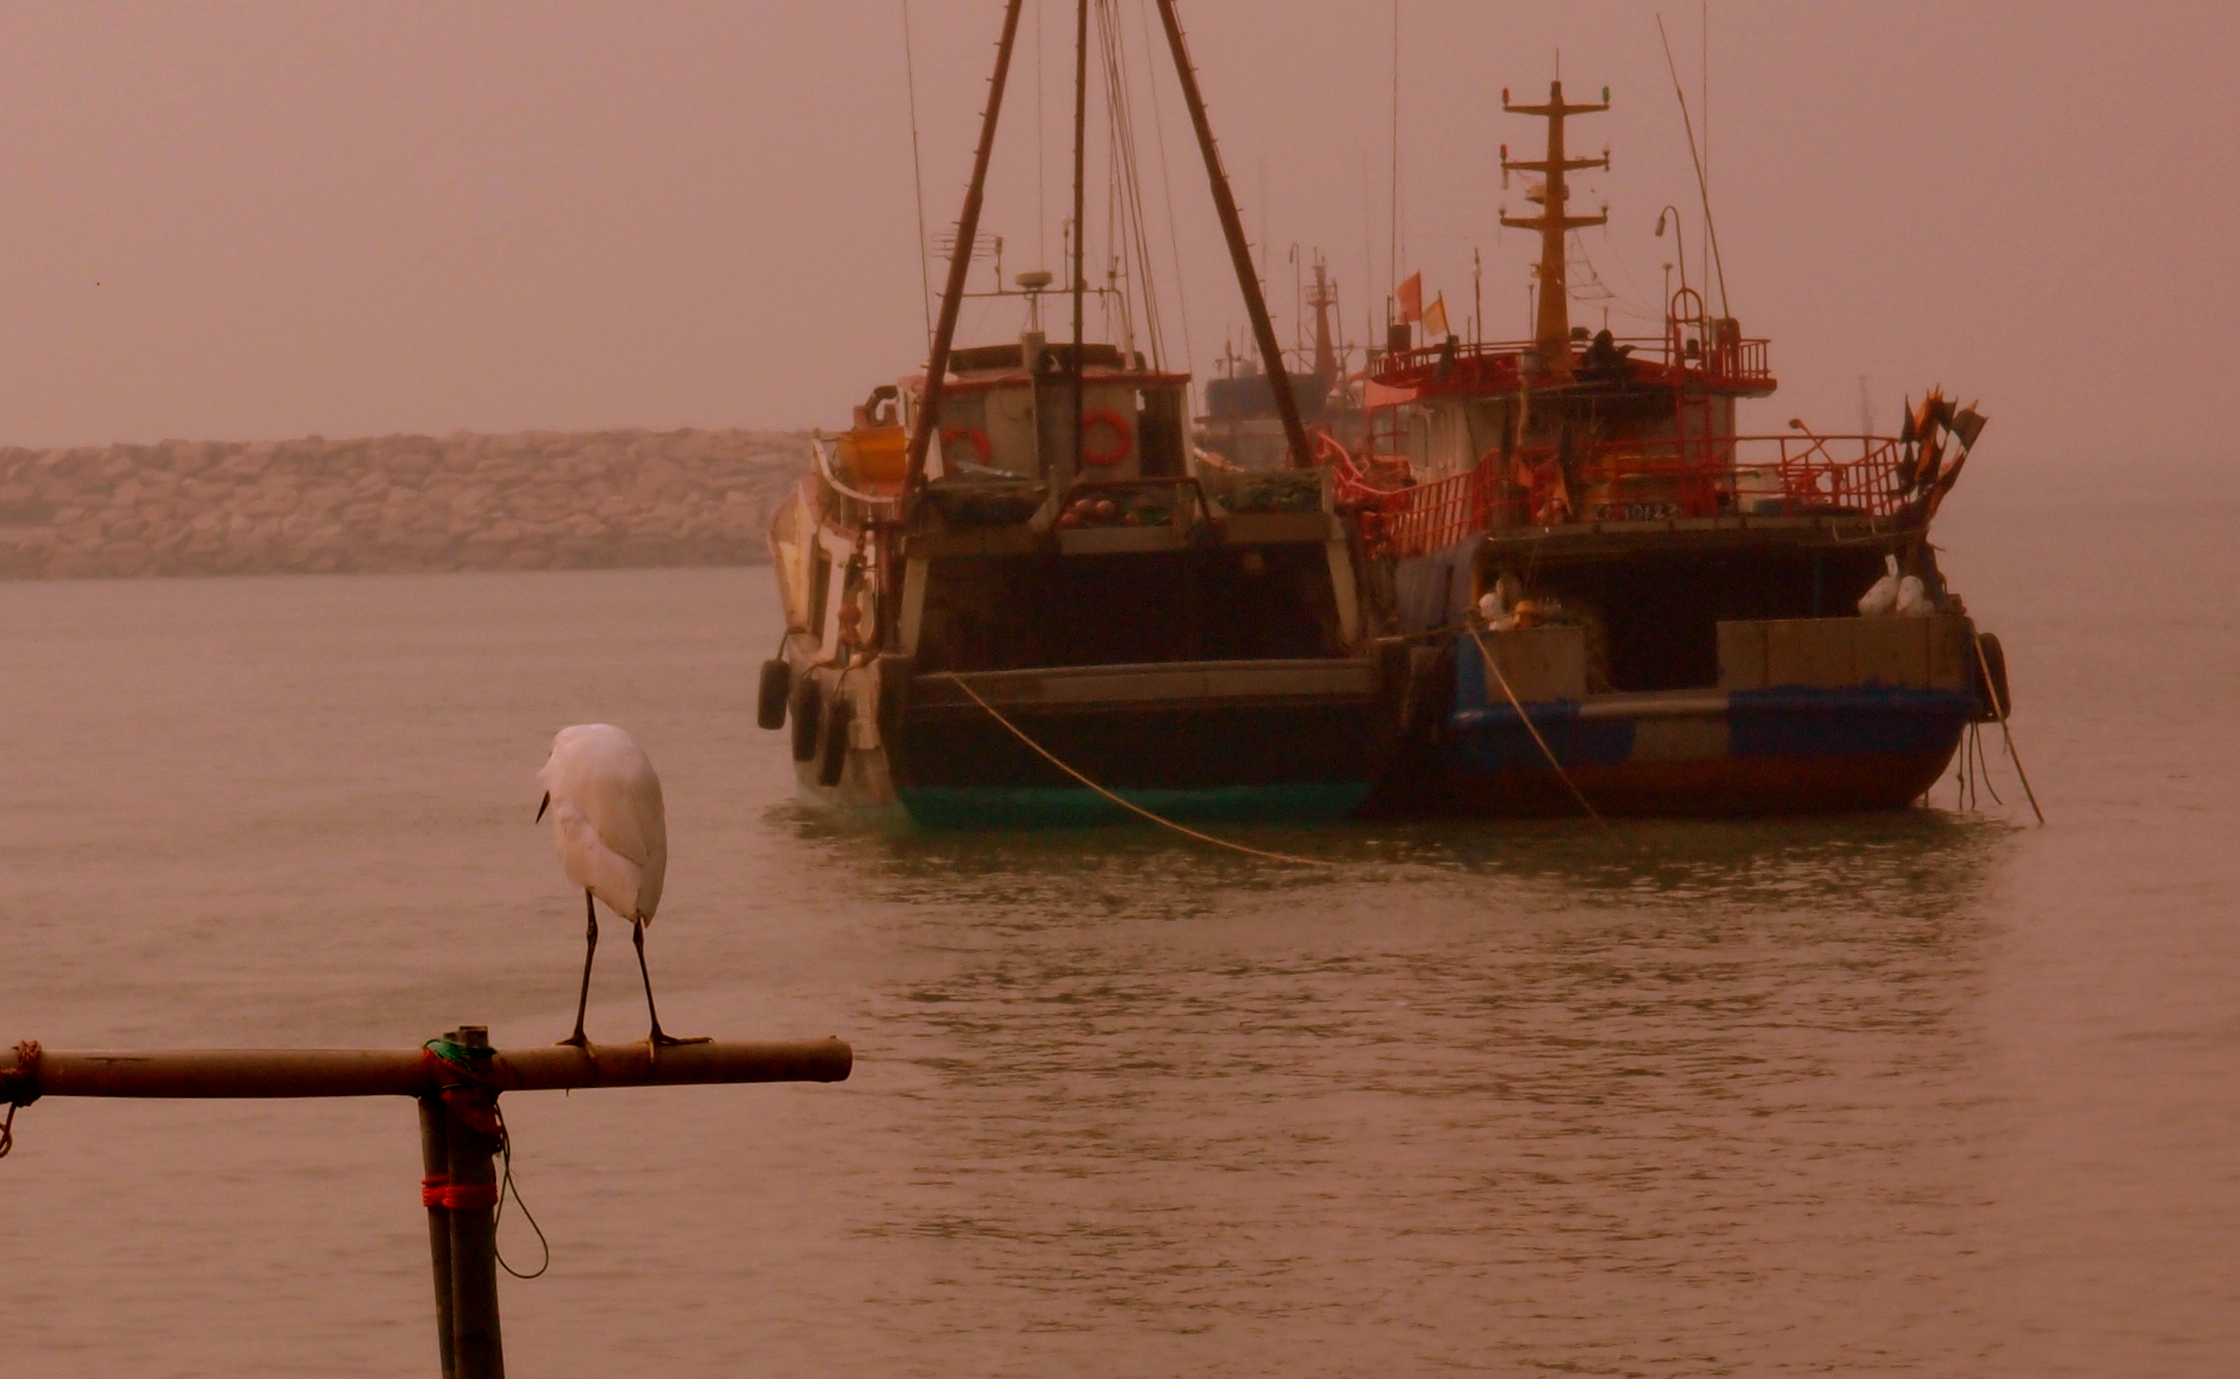 This bird is perhaps looking for lunch or just chilling at a rather hazy Tai O Fishing Village